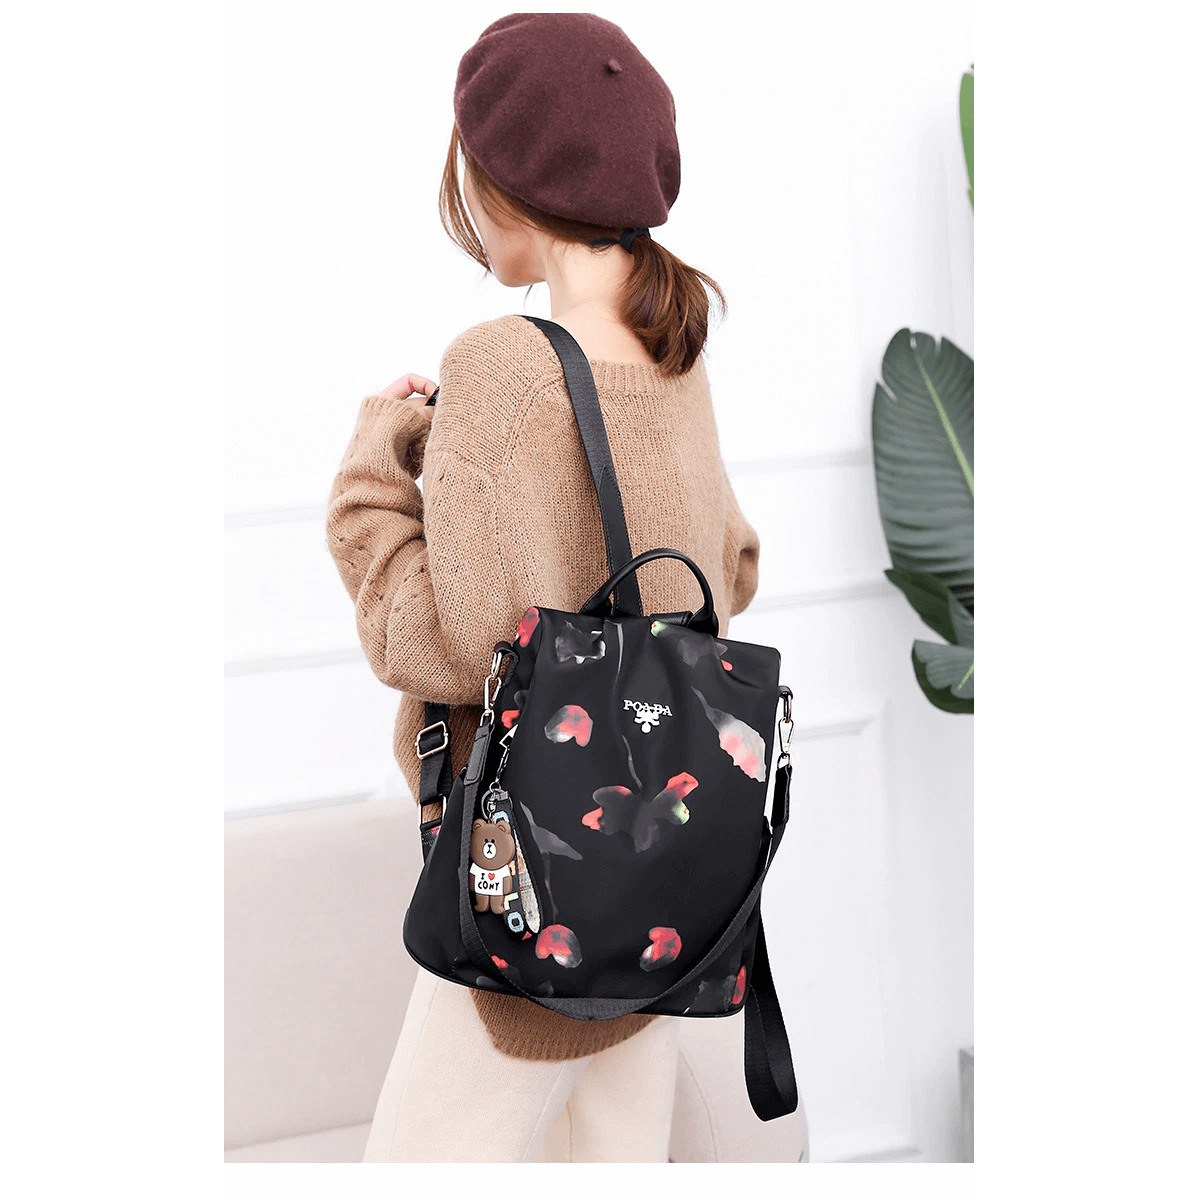 Handbag, Shoulder Bag, Sling Bag, Satchel Bag, Tote Bag and Crossbody Bags For Women - Waterproof 3 Way Anti-Theft Women's Backpack -Black Flower - Shopptique